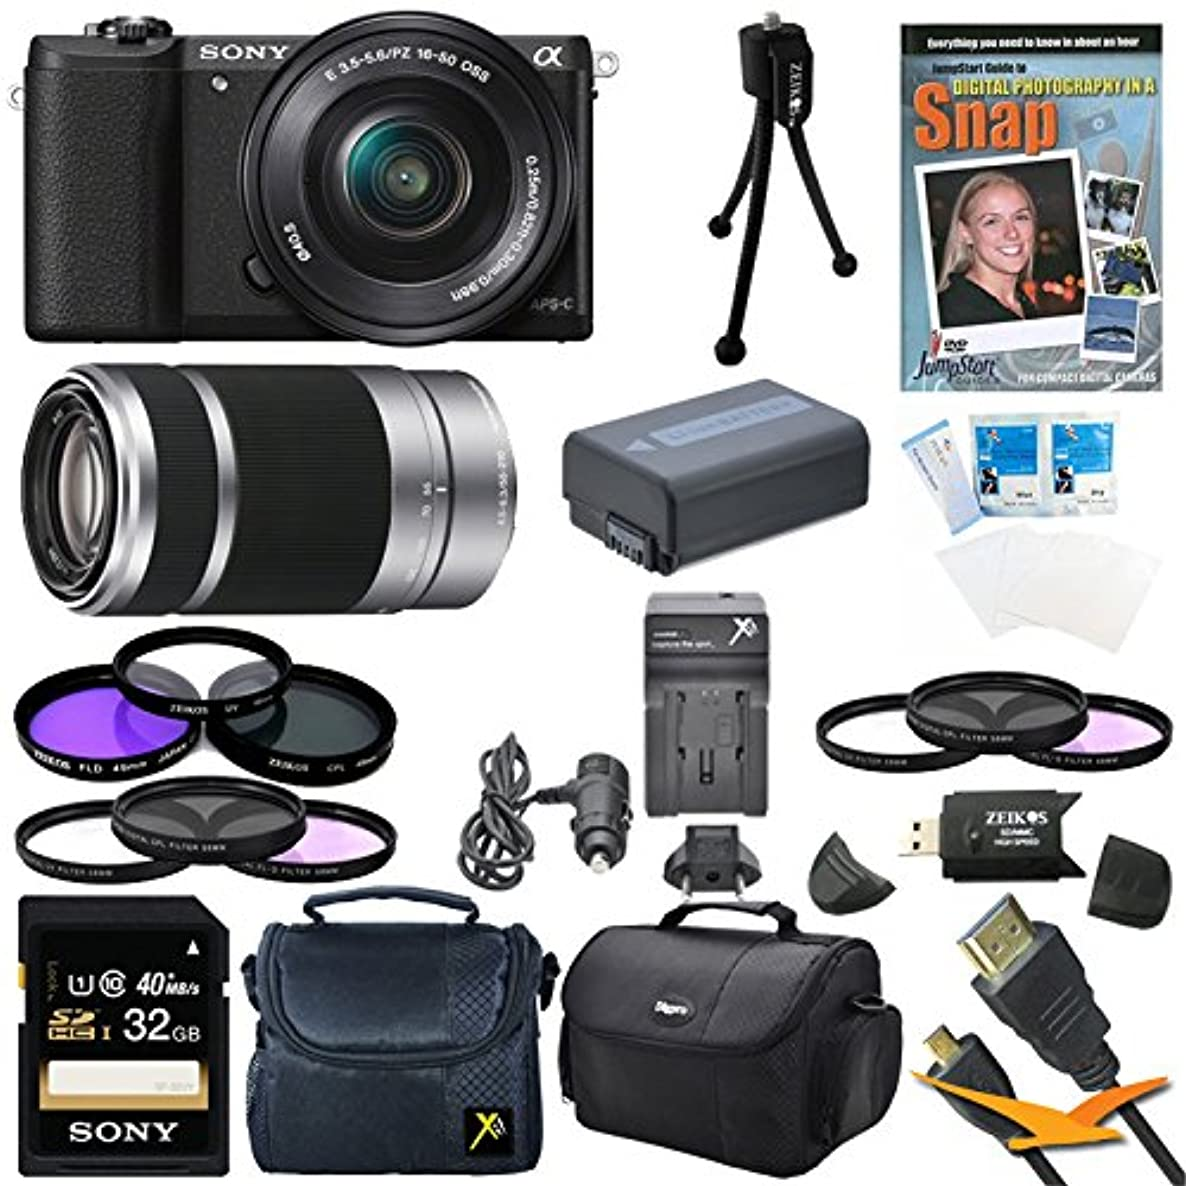 Sony a5100 ILCE5100L/B ILCE5100L ILCE5100 ILCE5100lb 16-50mm Interchangeable Lens Camera with 3-Inch Flip Up LCD (Black) Bundle with SEL 55-210 Zoom Lens (Silver), Sony 32GB Class 10 SD card, Spare Battery, Rapid AC/DC Charger, Micro HDMI Cable+ More